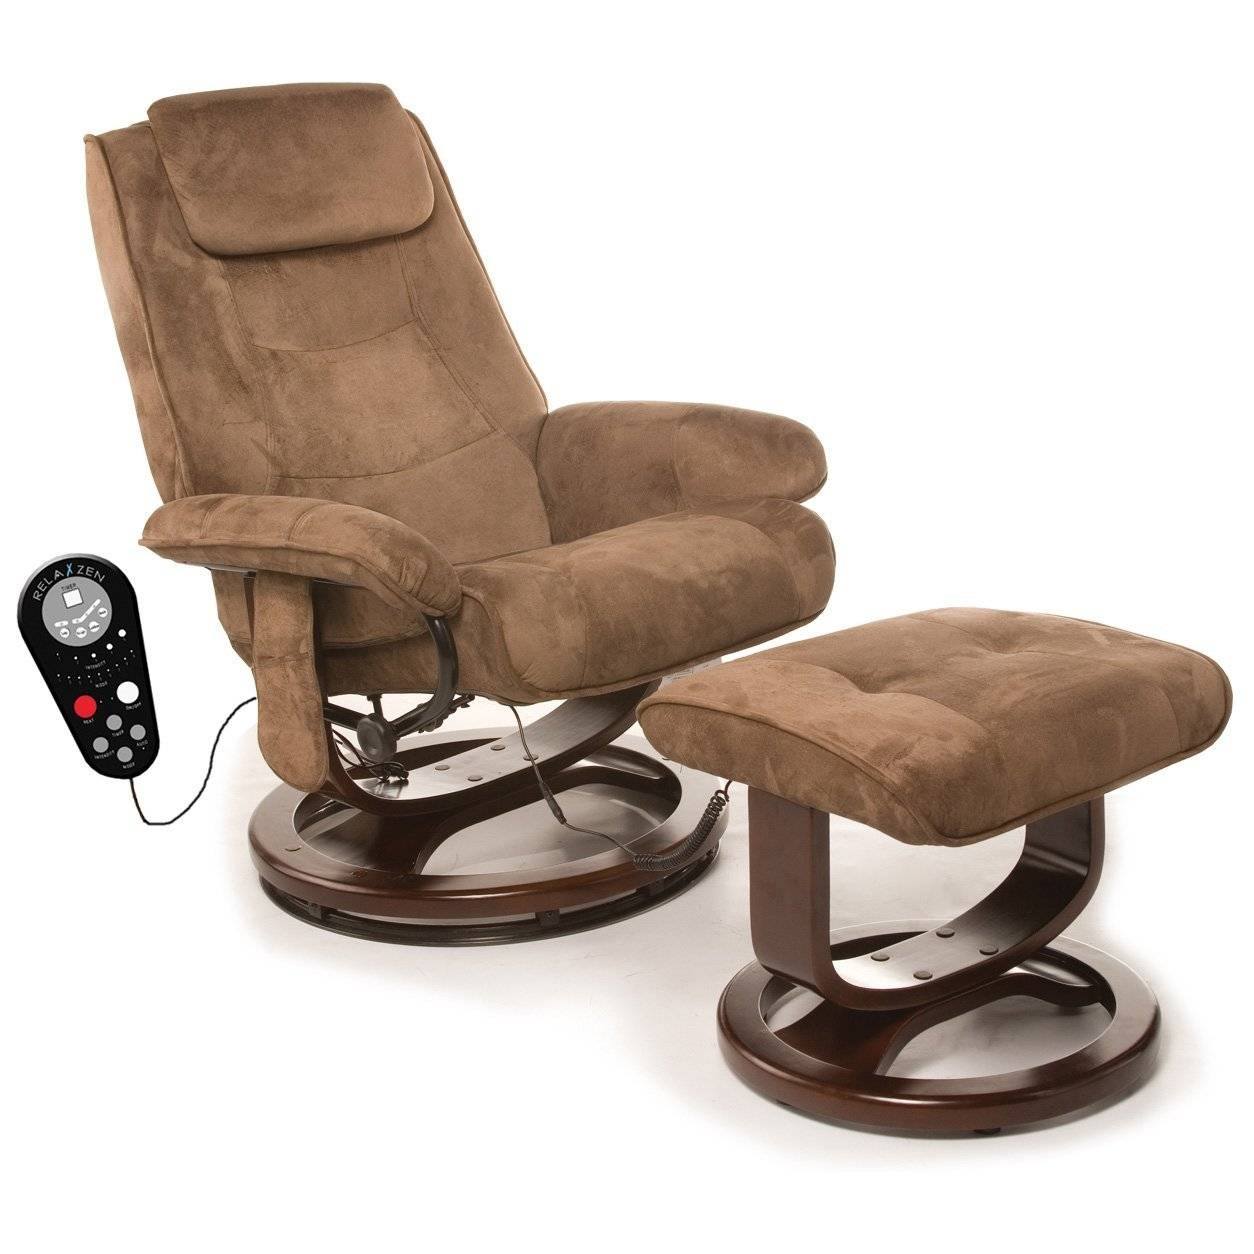 Top 10 Best Heated Vibrating Chairs In 2017 Reviews within Sofa Chair Recliner (Image 30 of 30)